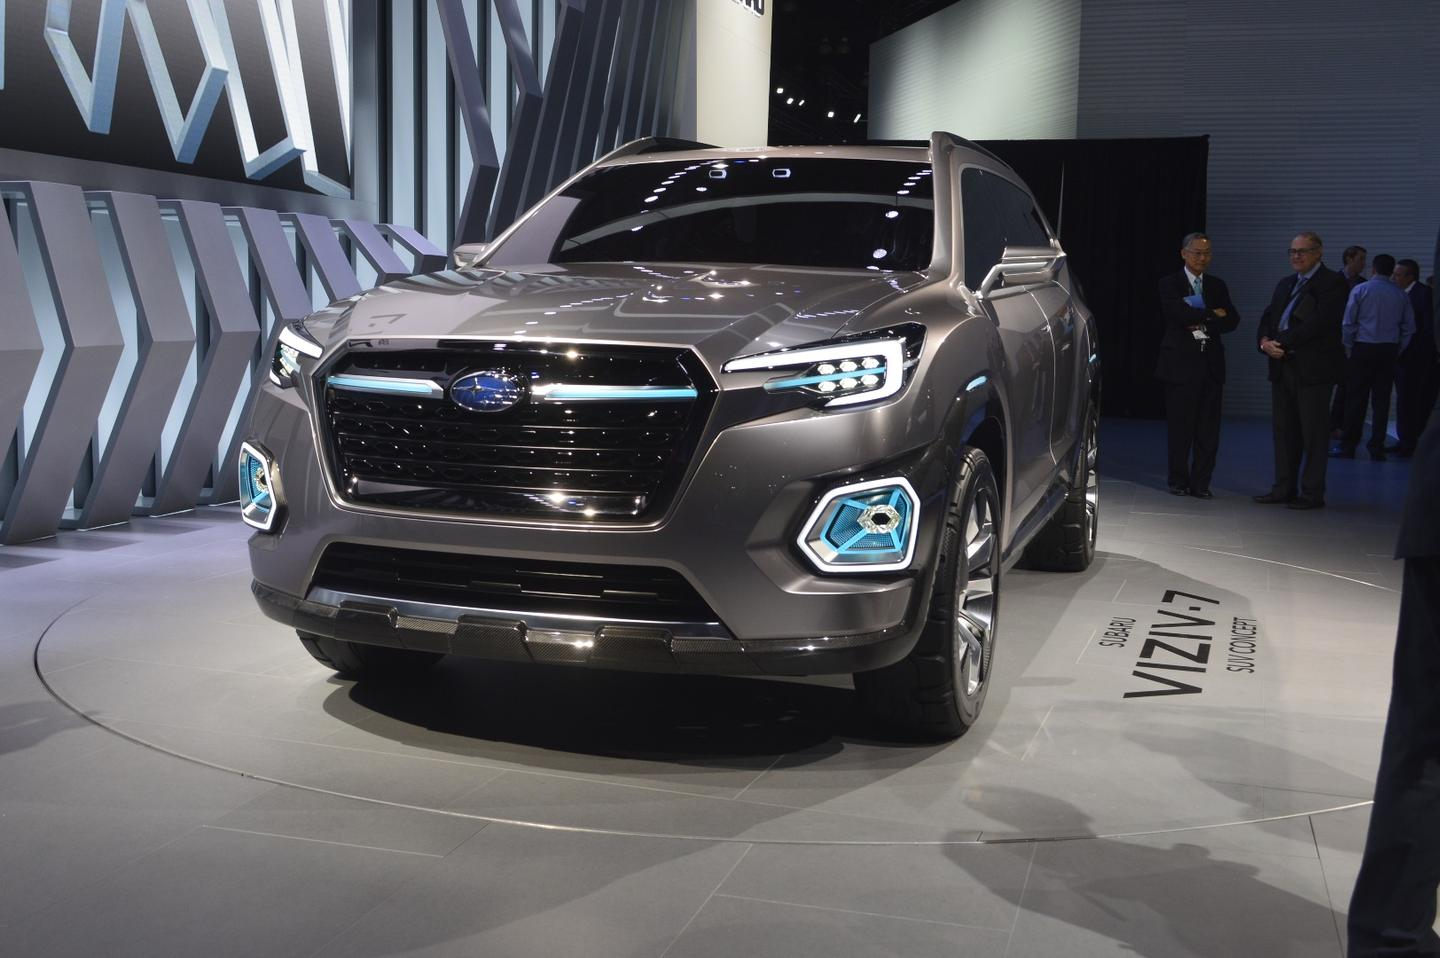 The Viziv-7 has the same hawk eye headlamps we've seen on previous Subaru concepts